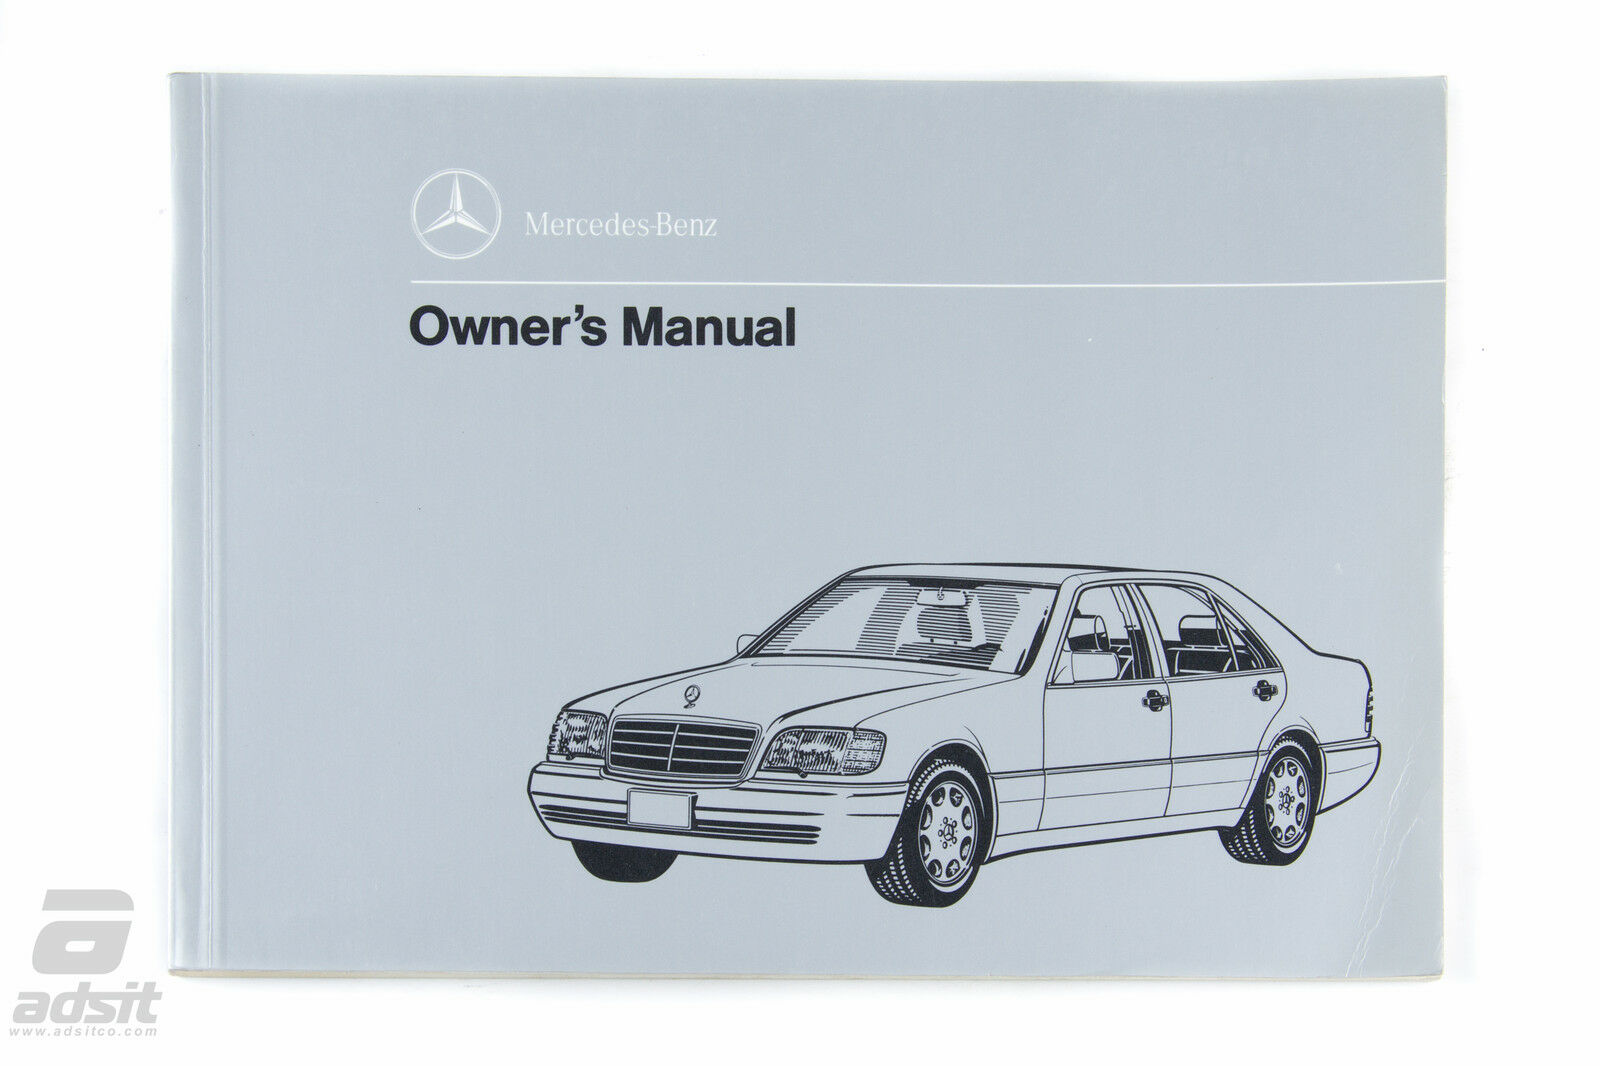 Mercedes-Benz Owner's Manual 1995 S350 Turbo Diesel *6515201313 *1405845097  1 of 1Only 1 available ...